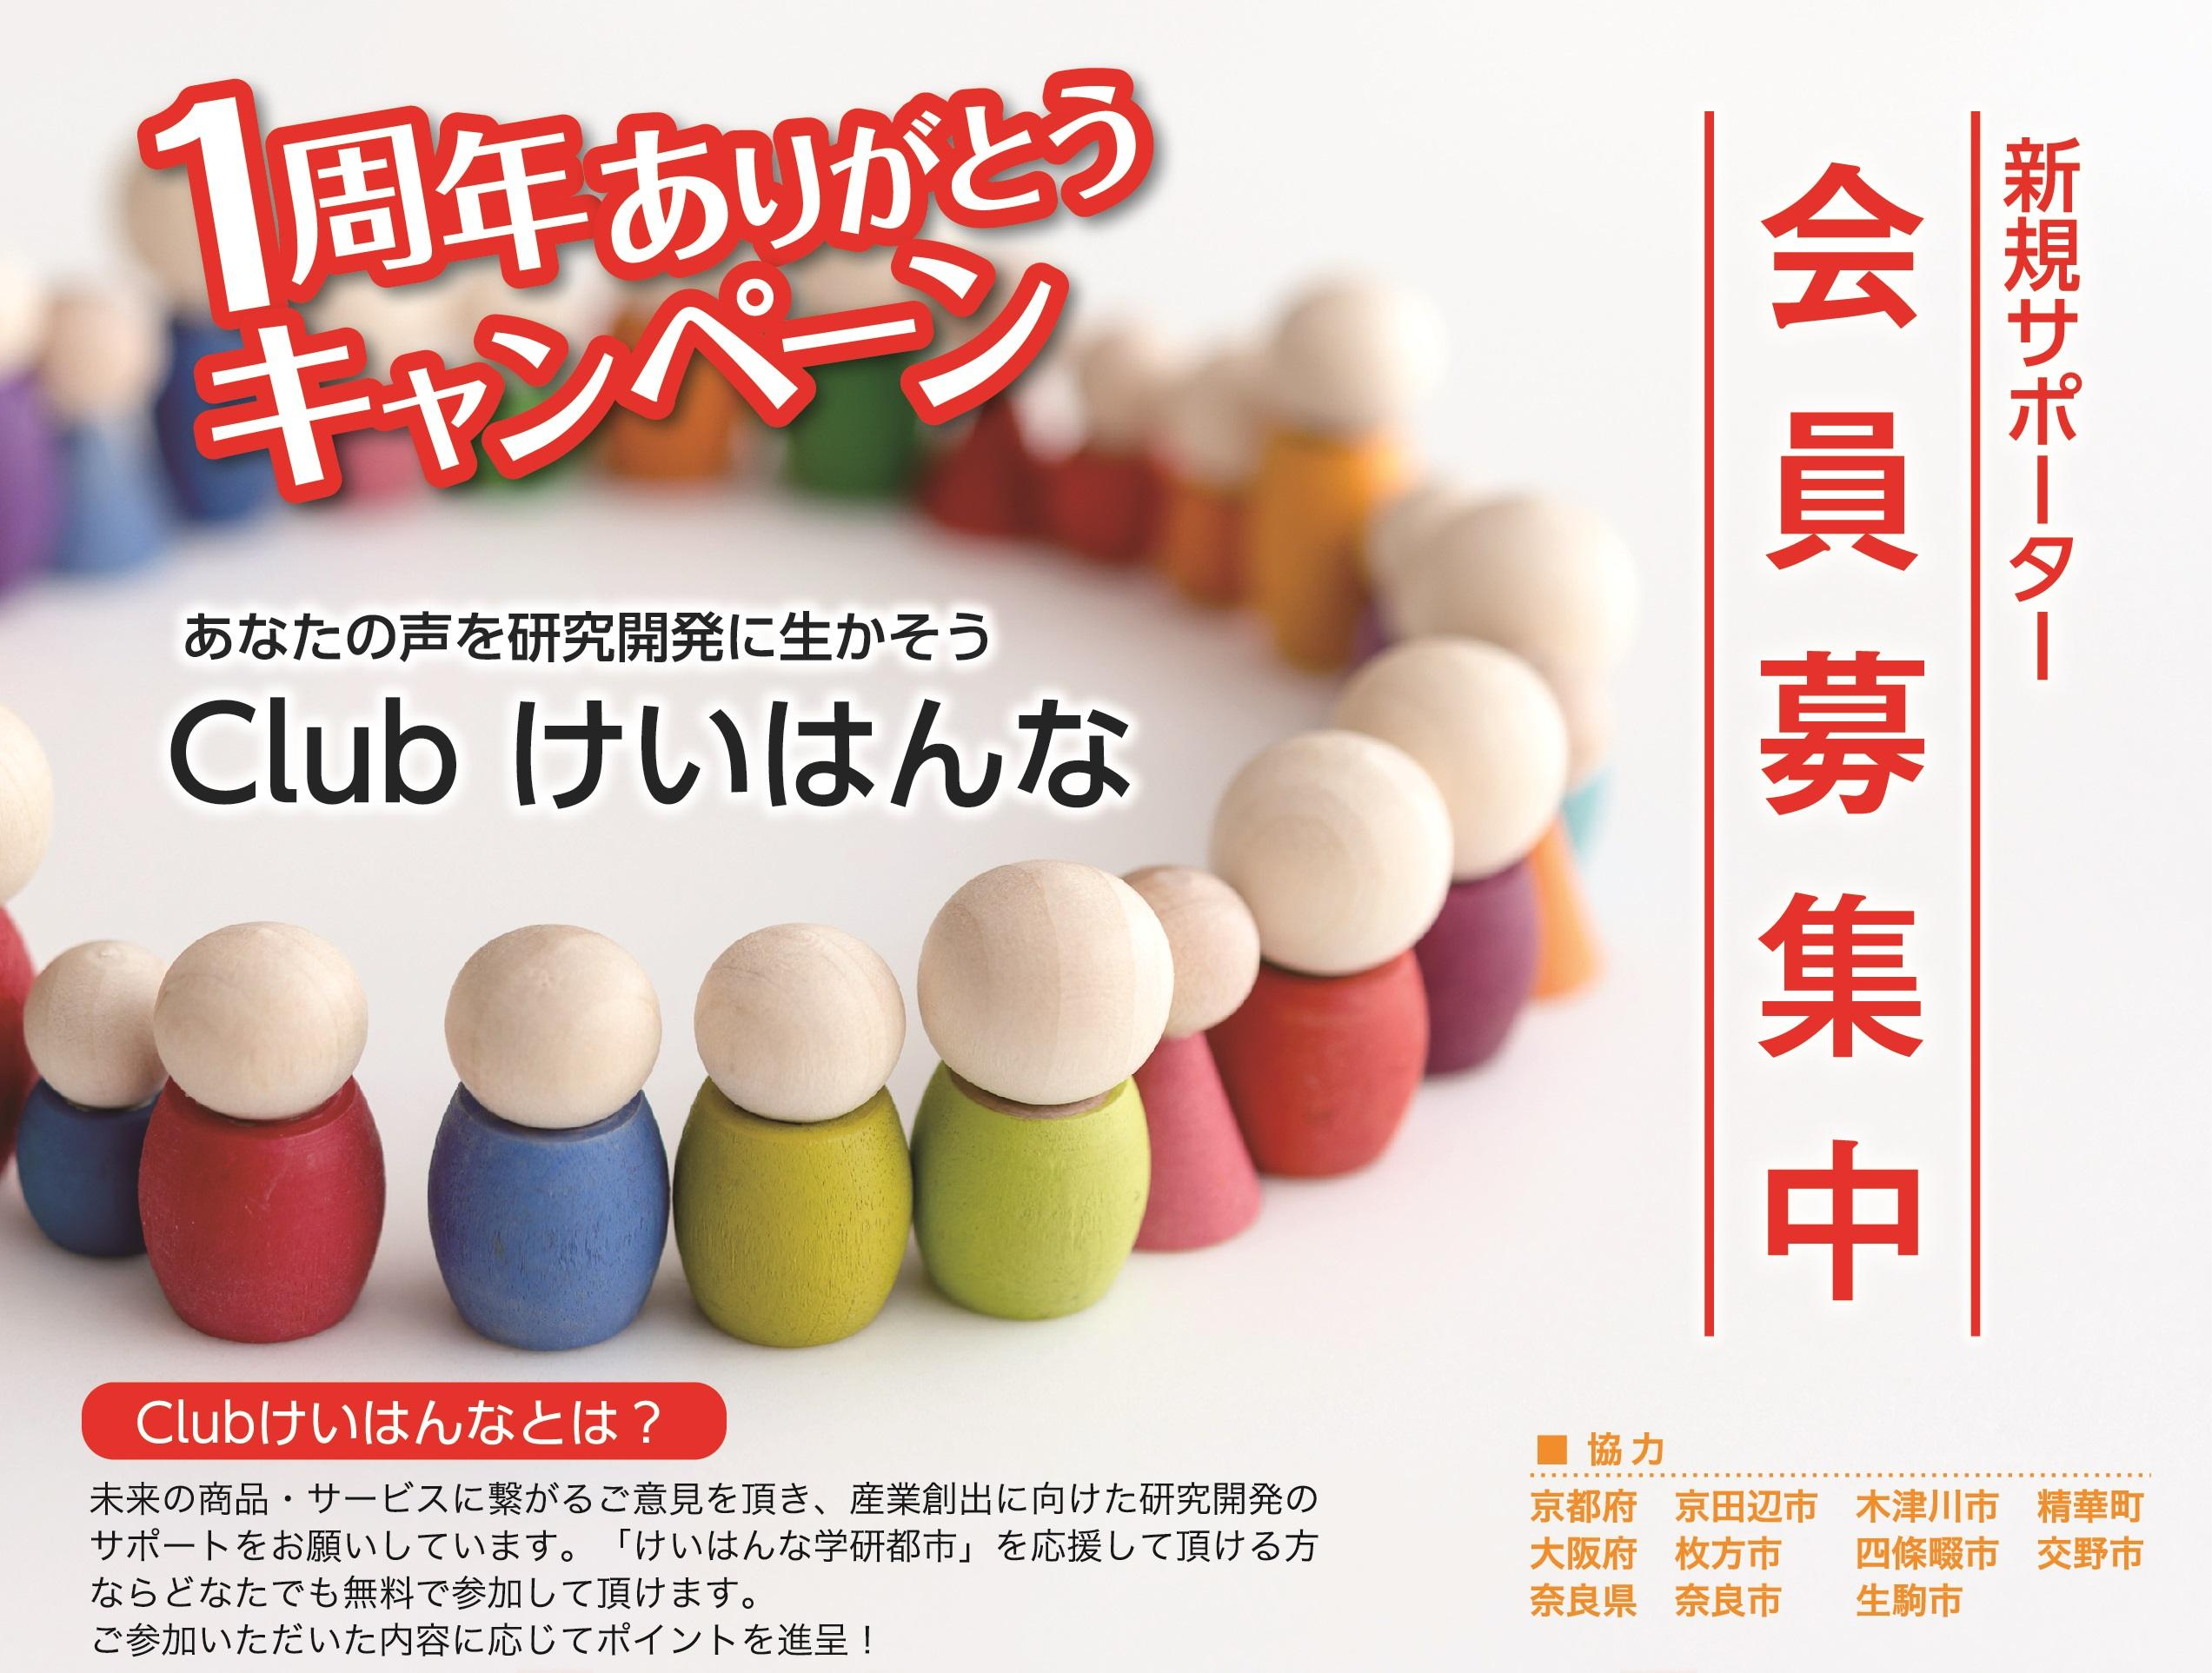 【Clubけいはんな】「第2回友達紹介」キャンペーン3/31まで延長